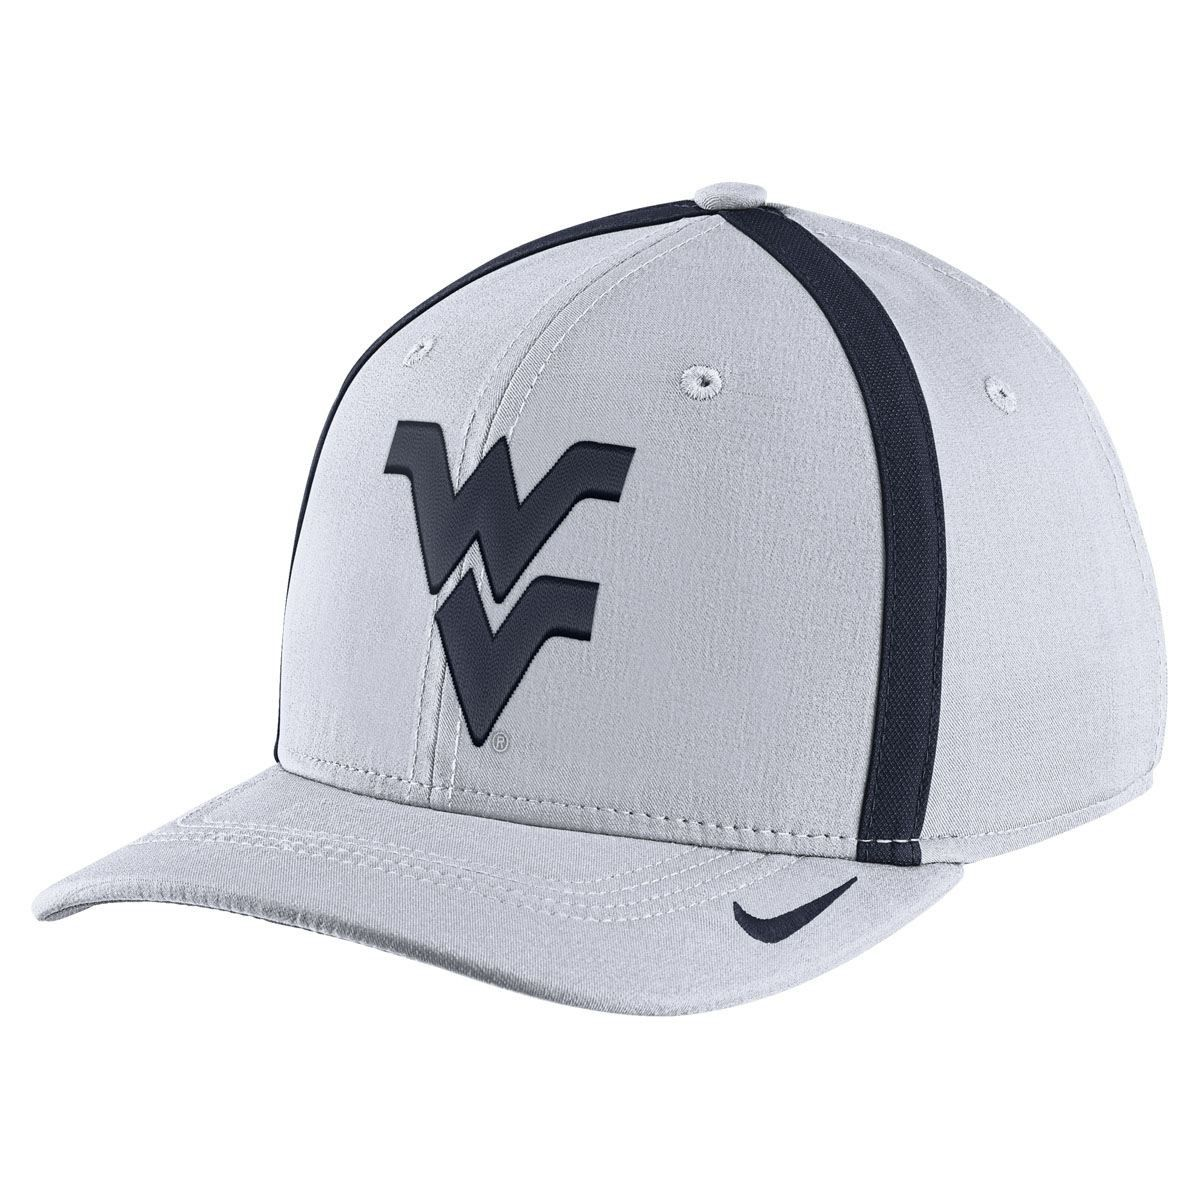 eb41896565002 Our Sideline Swoosh Flex cap is constructed in 100% Dri-FIT polyester  fabric with Nike Aerobill construction